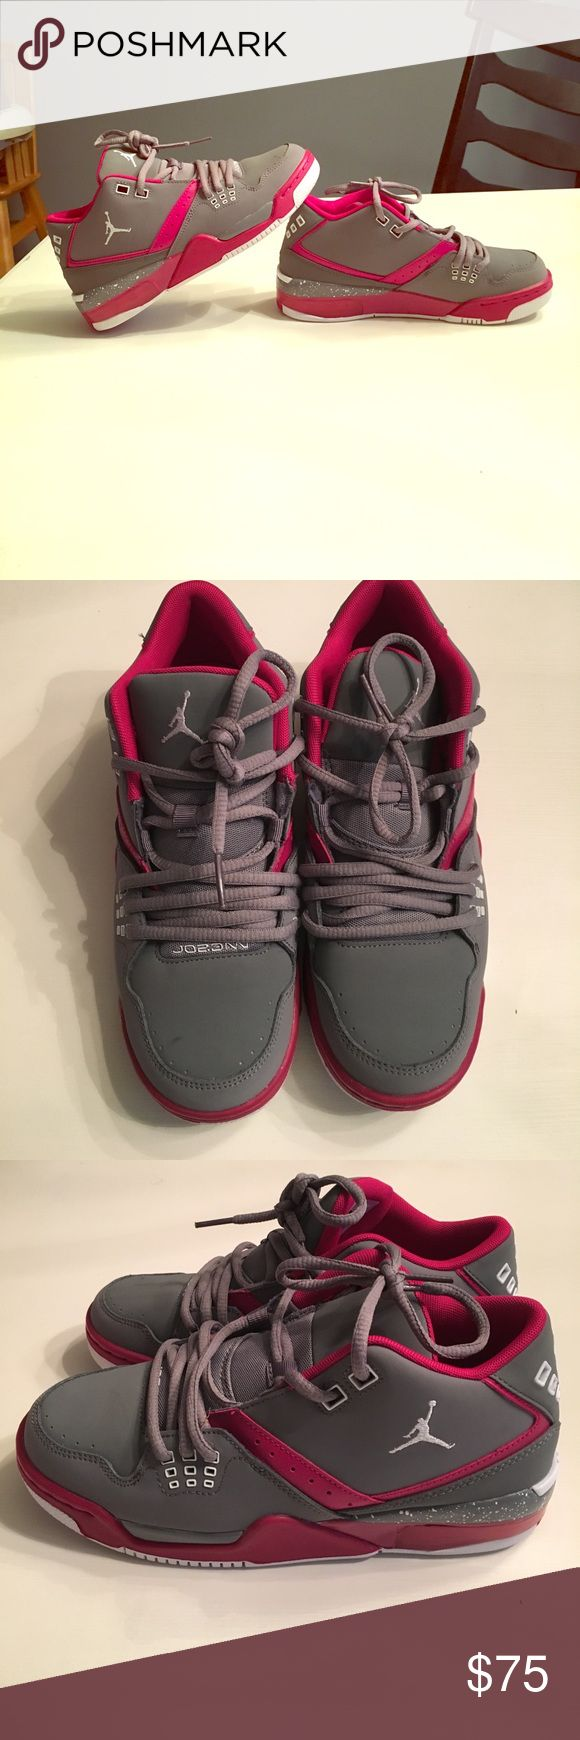 NWOT Jordans Air Flight 23 Youth Size These awesome Jordan's are grey and pink and have never been worn! They are a youth size 5, but can also fit a women's size 7. Super cute, don't pass these up! Air Jordan Shoes Sneakers